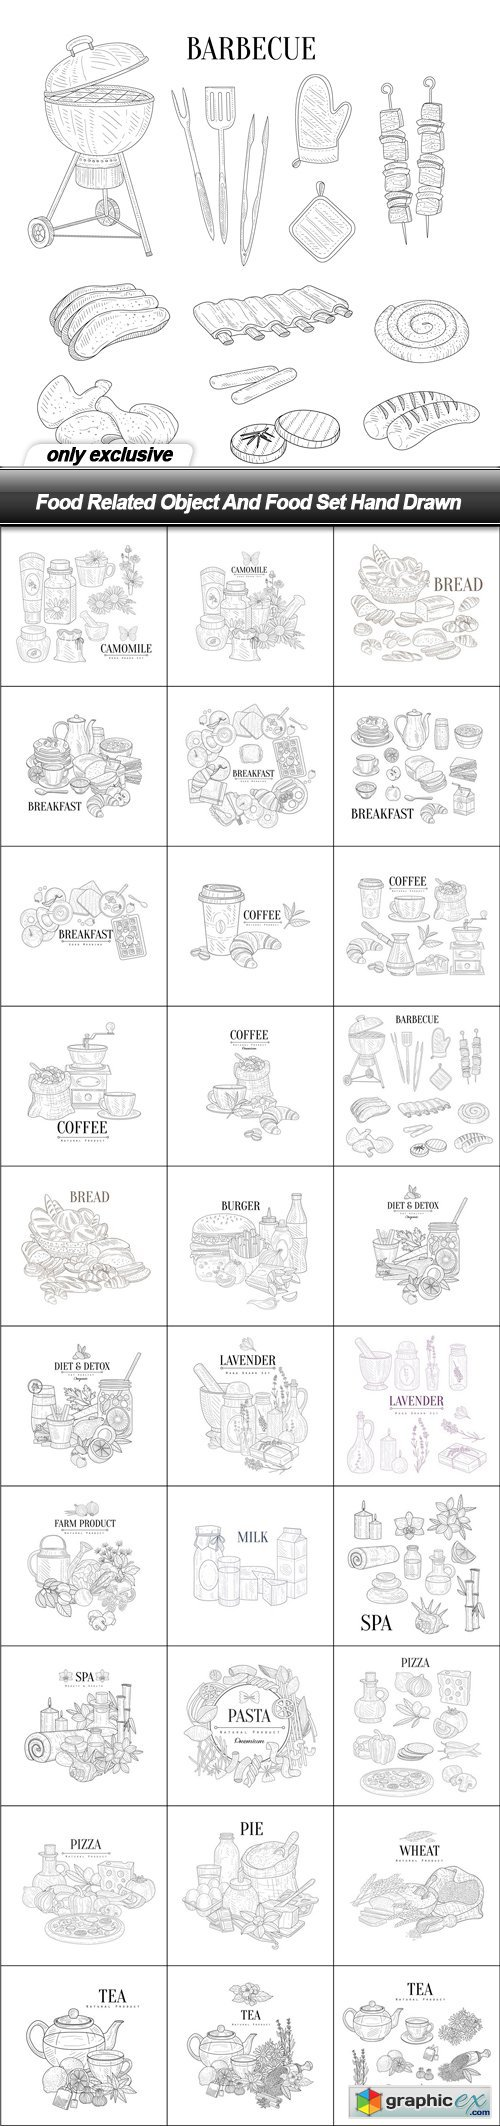 Food Related Object And Food Set Hand Drawn - 30 EPS